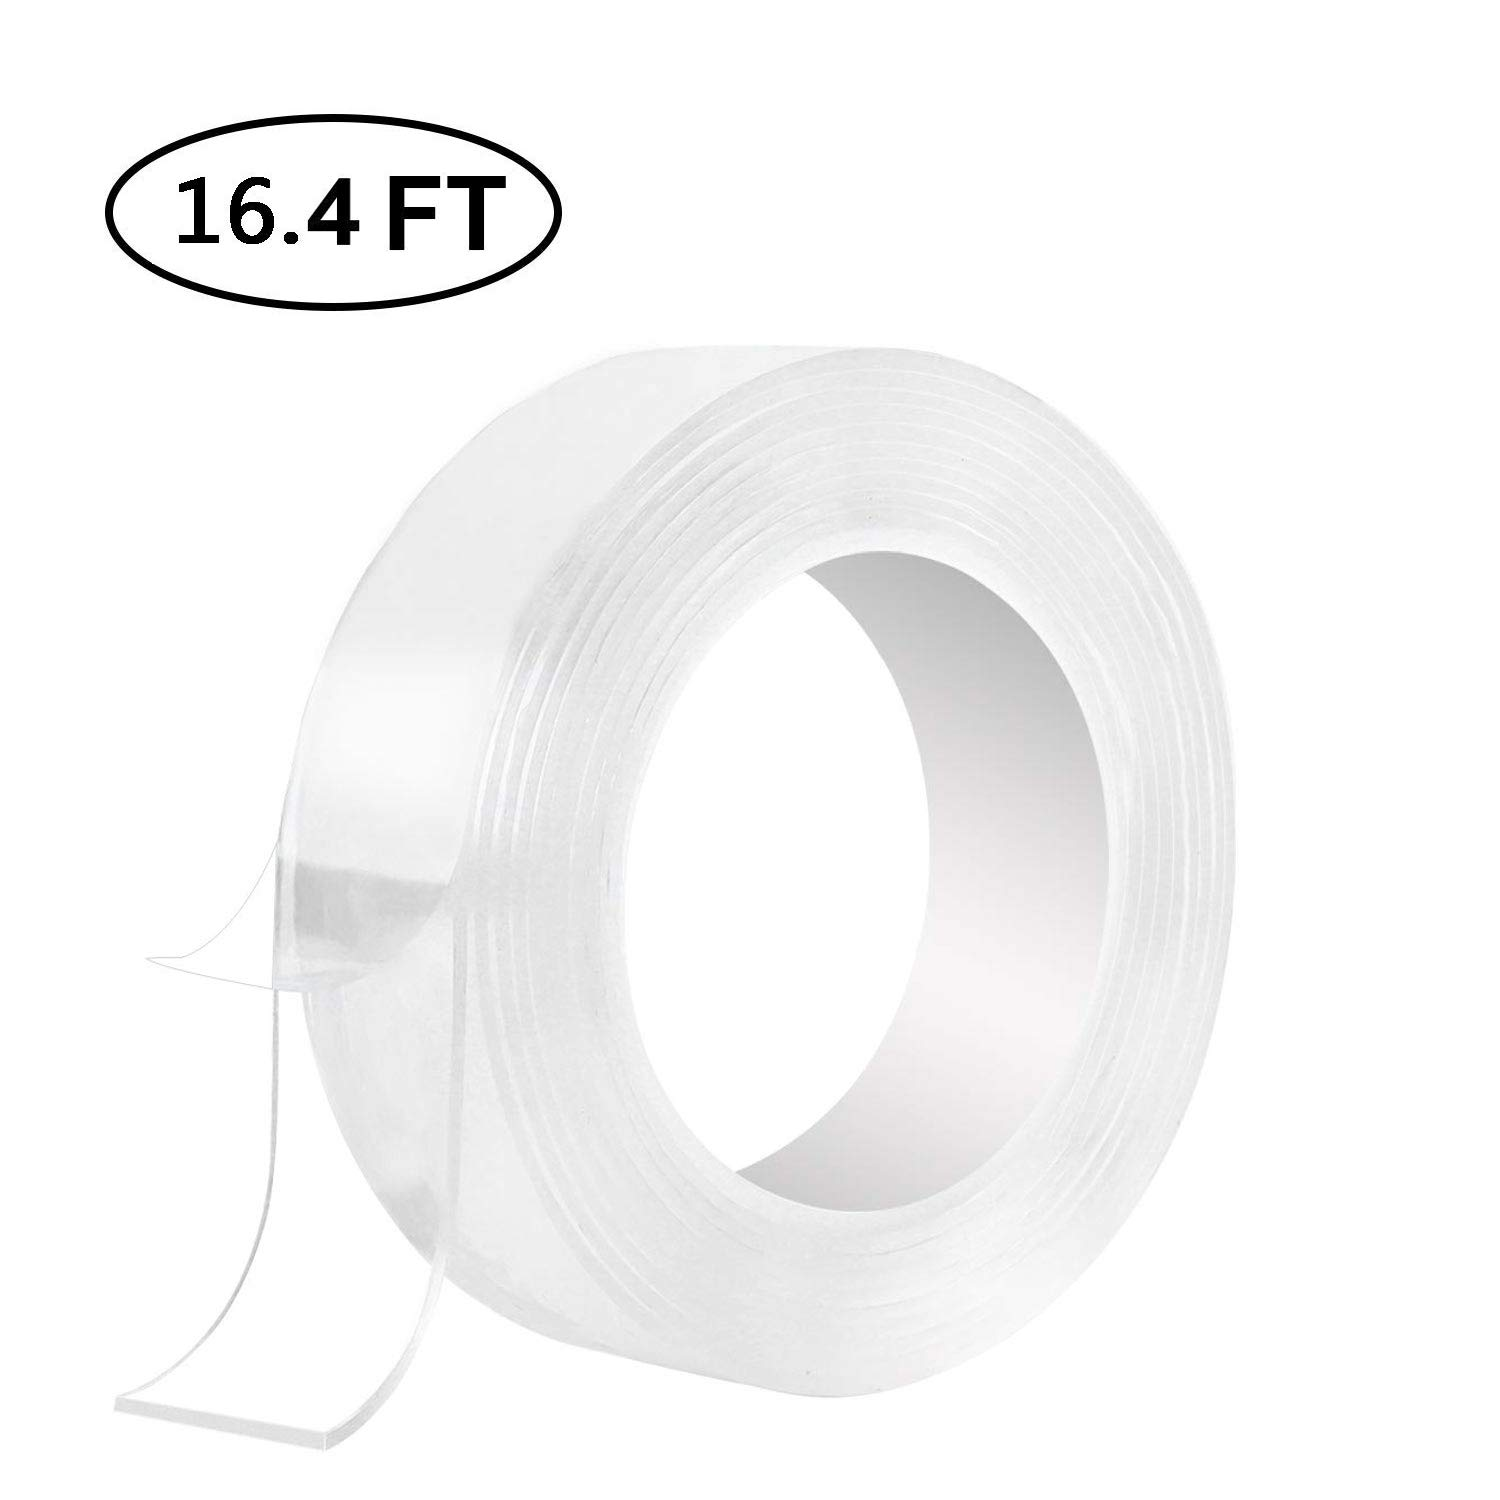 Washable Adhesive Tape,Traceless Reusable Clear Double Sided Anti-Slip Nano Gel Pads,Removable Sticky Transparent Strips Grip for Glass,Metal,Kitchen Cabinets and Tile Nano Tape (16.4 ft) by FetionSung